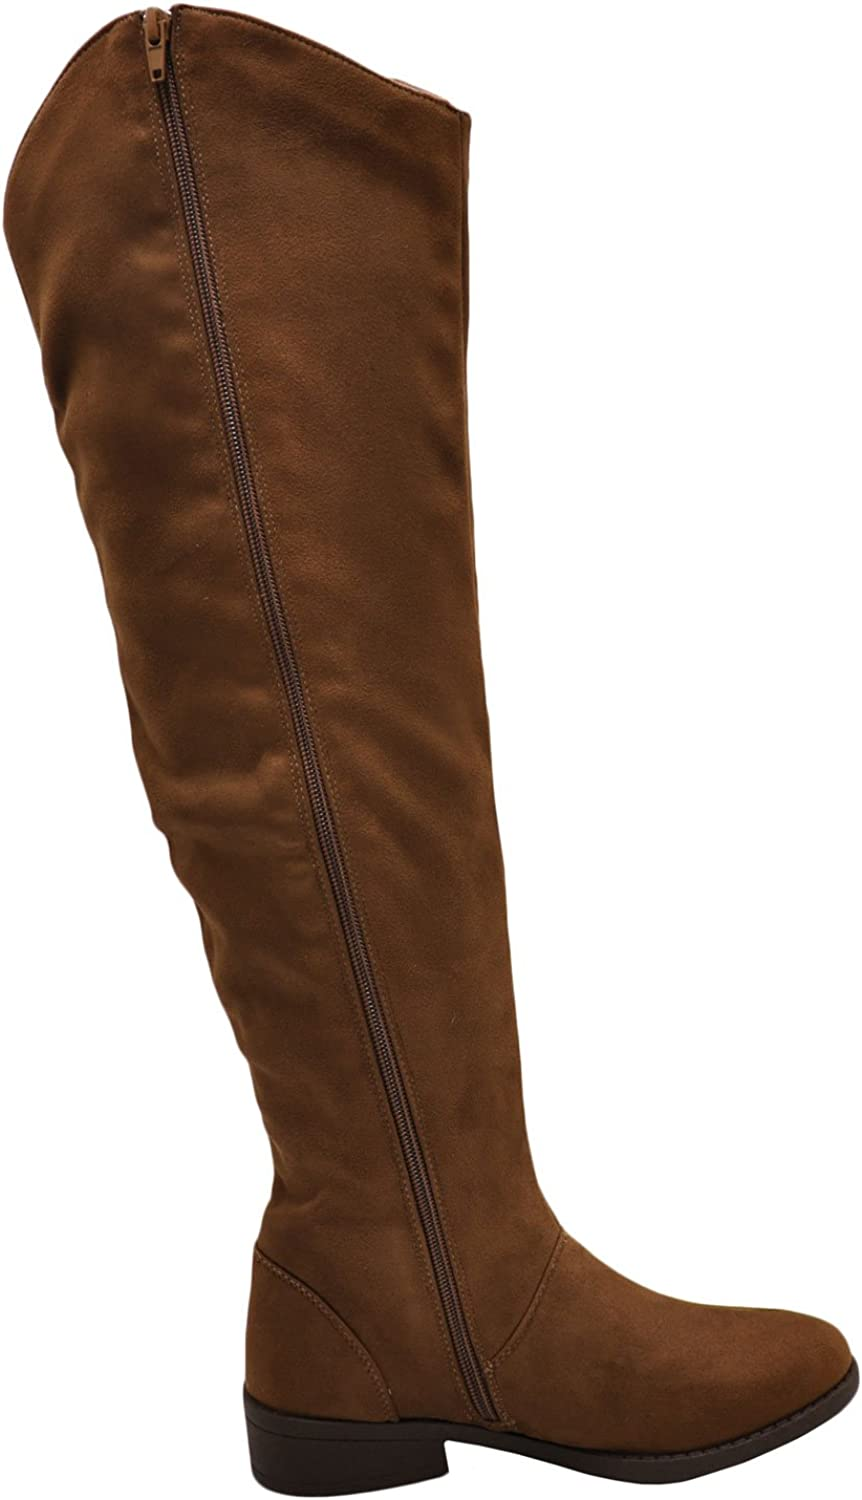 Qupid Plateau overseas 183BX Women's Casual High Knee Faux Boot Suede Deluxe